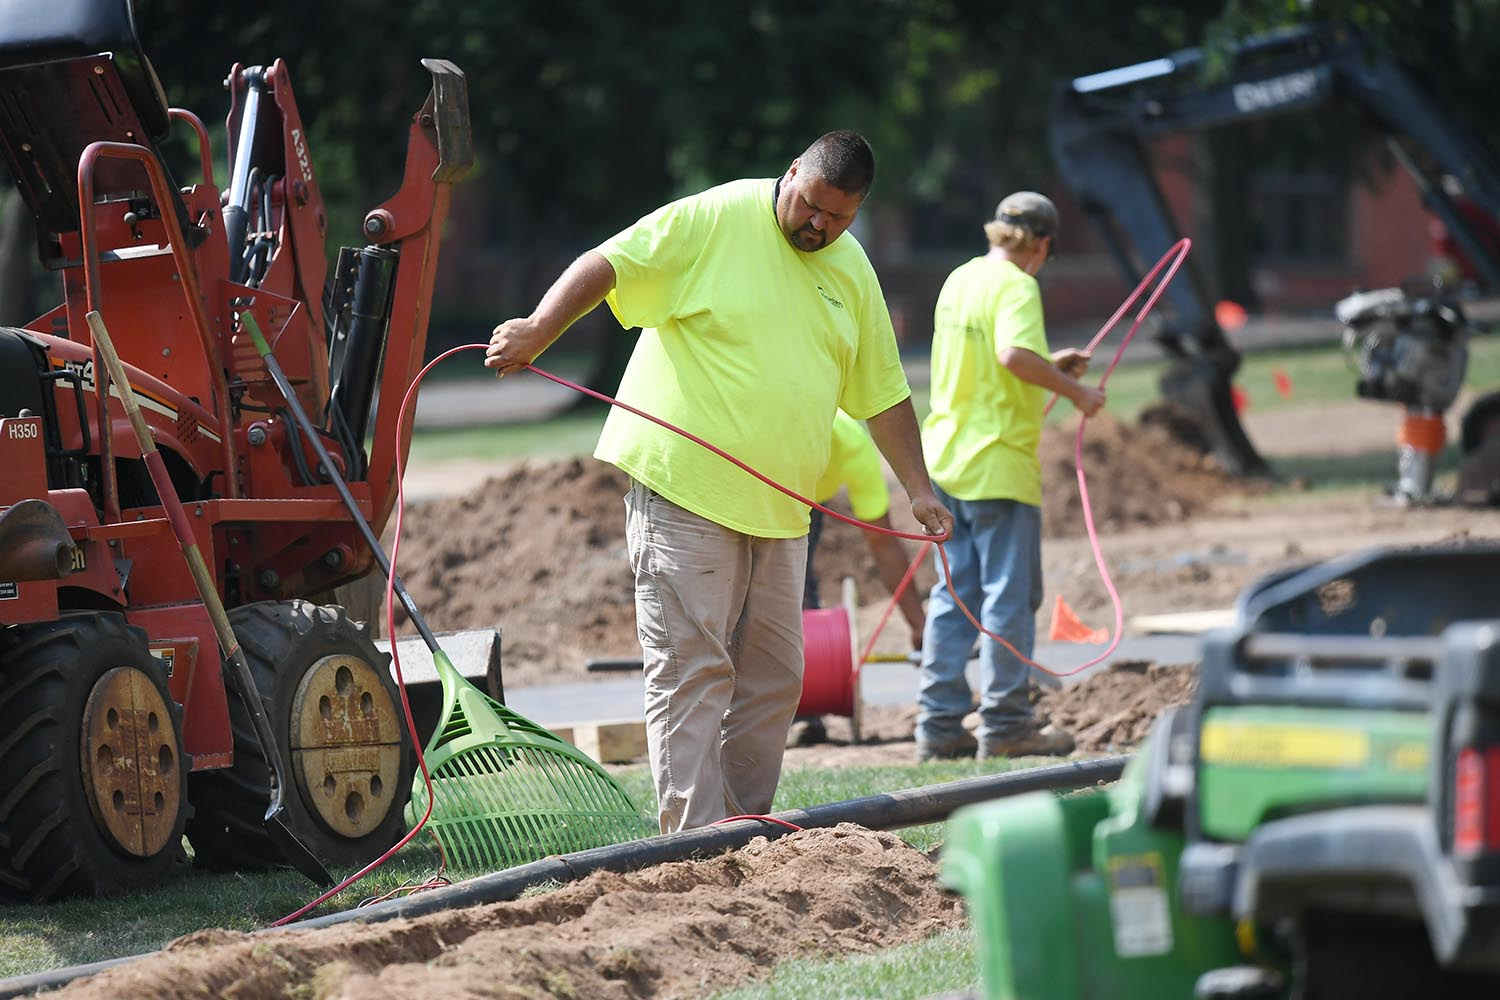 Crews install an irrigation system near College Row.